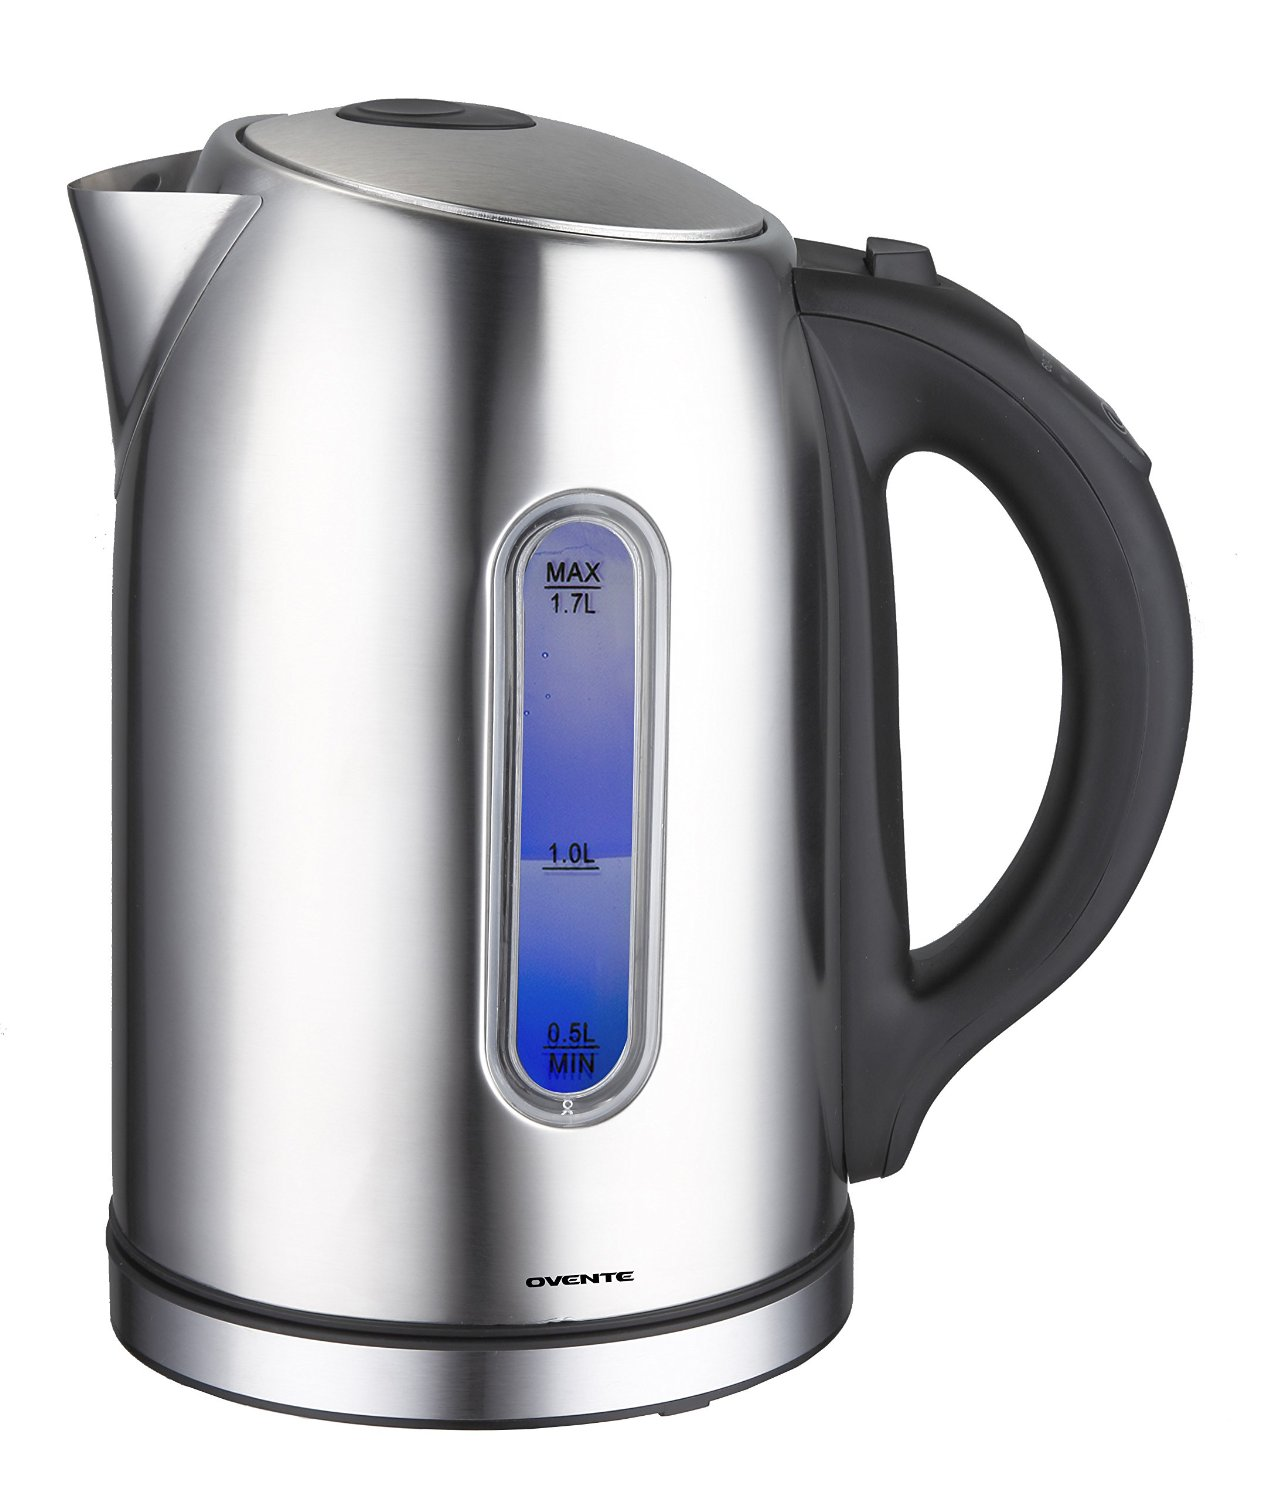 Ovente KS88S Stainless Steel Kettle